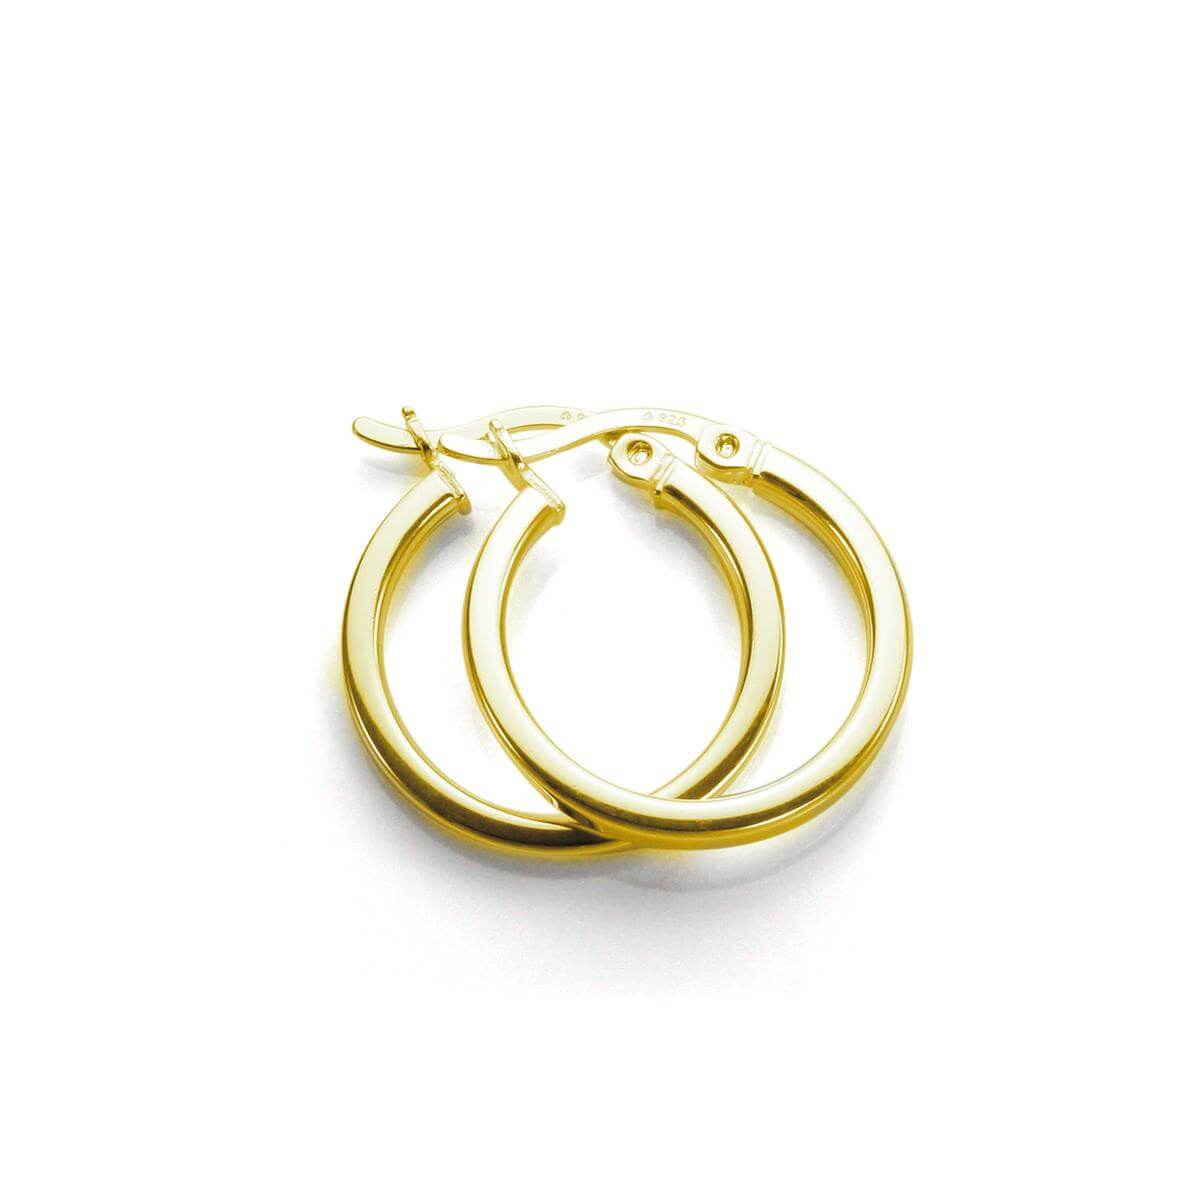 Gold Plated Sterling Silver 15mm Square Tube Hoop Earrings